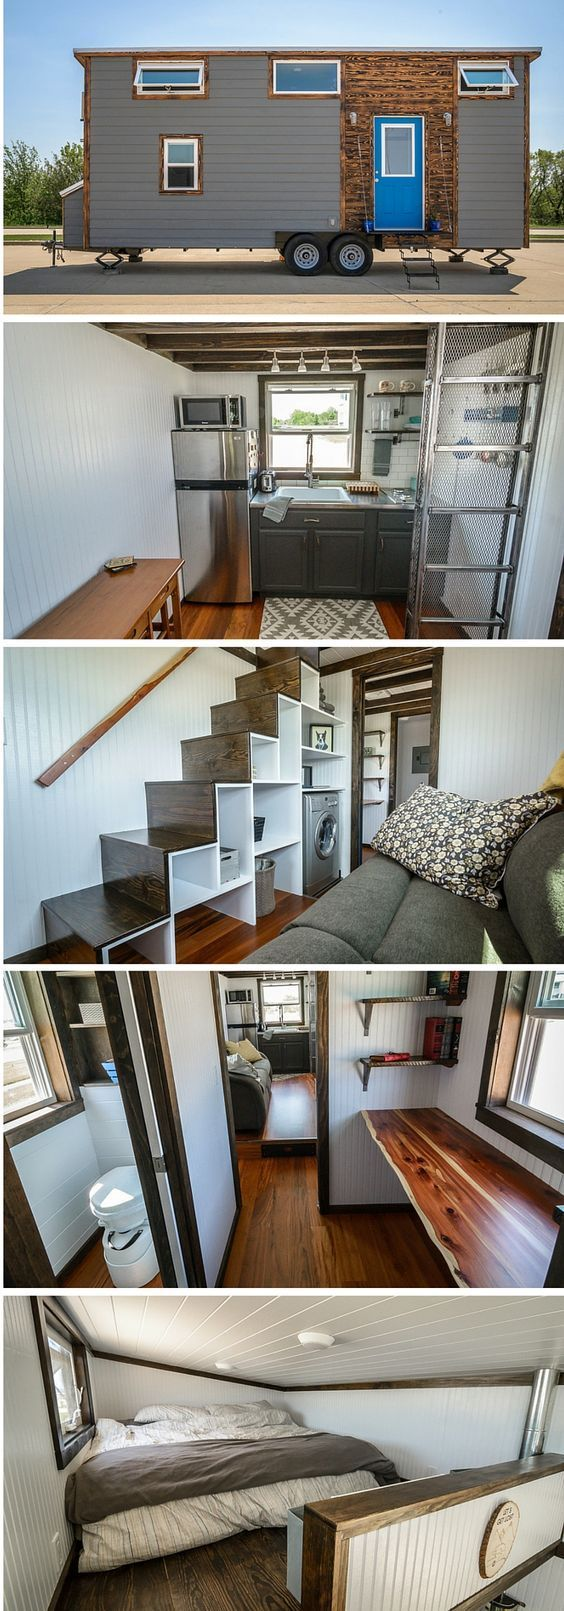 home office awesome house room. Awesome Tiny Home Inspiration | The Triton House From Wind River Homes Of Chattanooga Office Room O